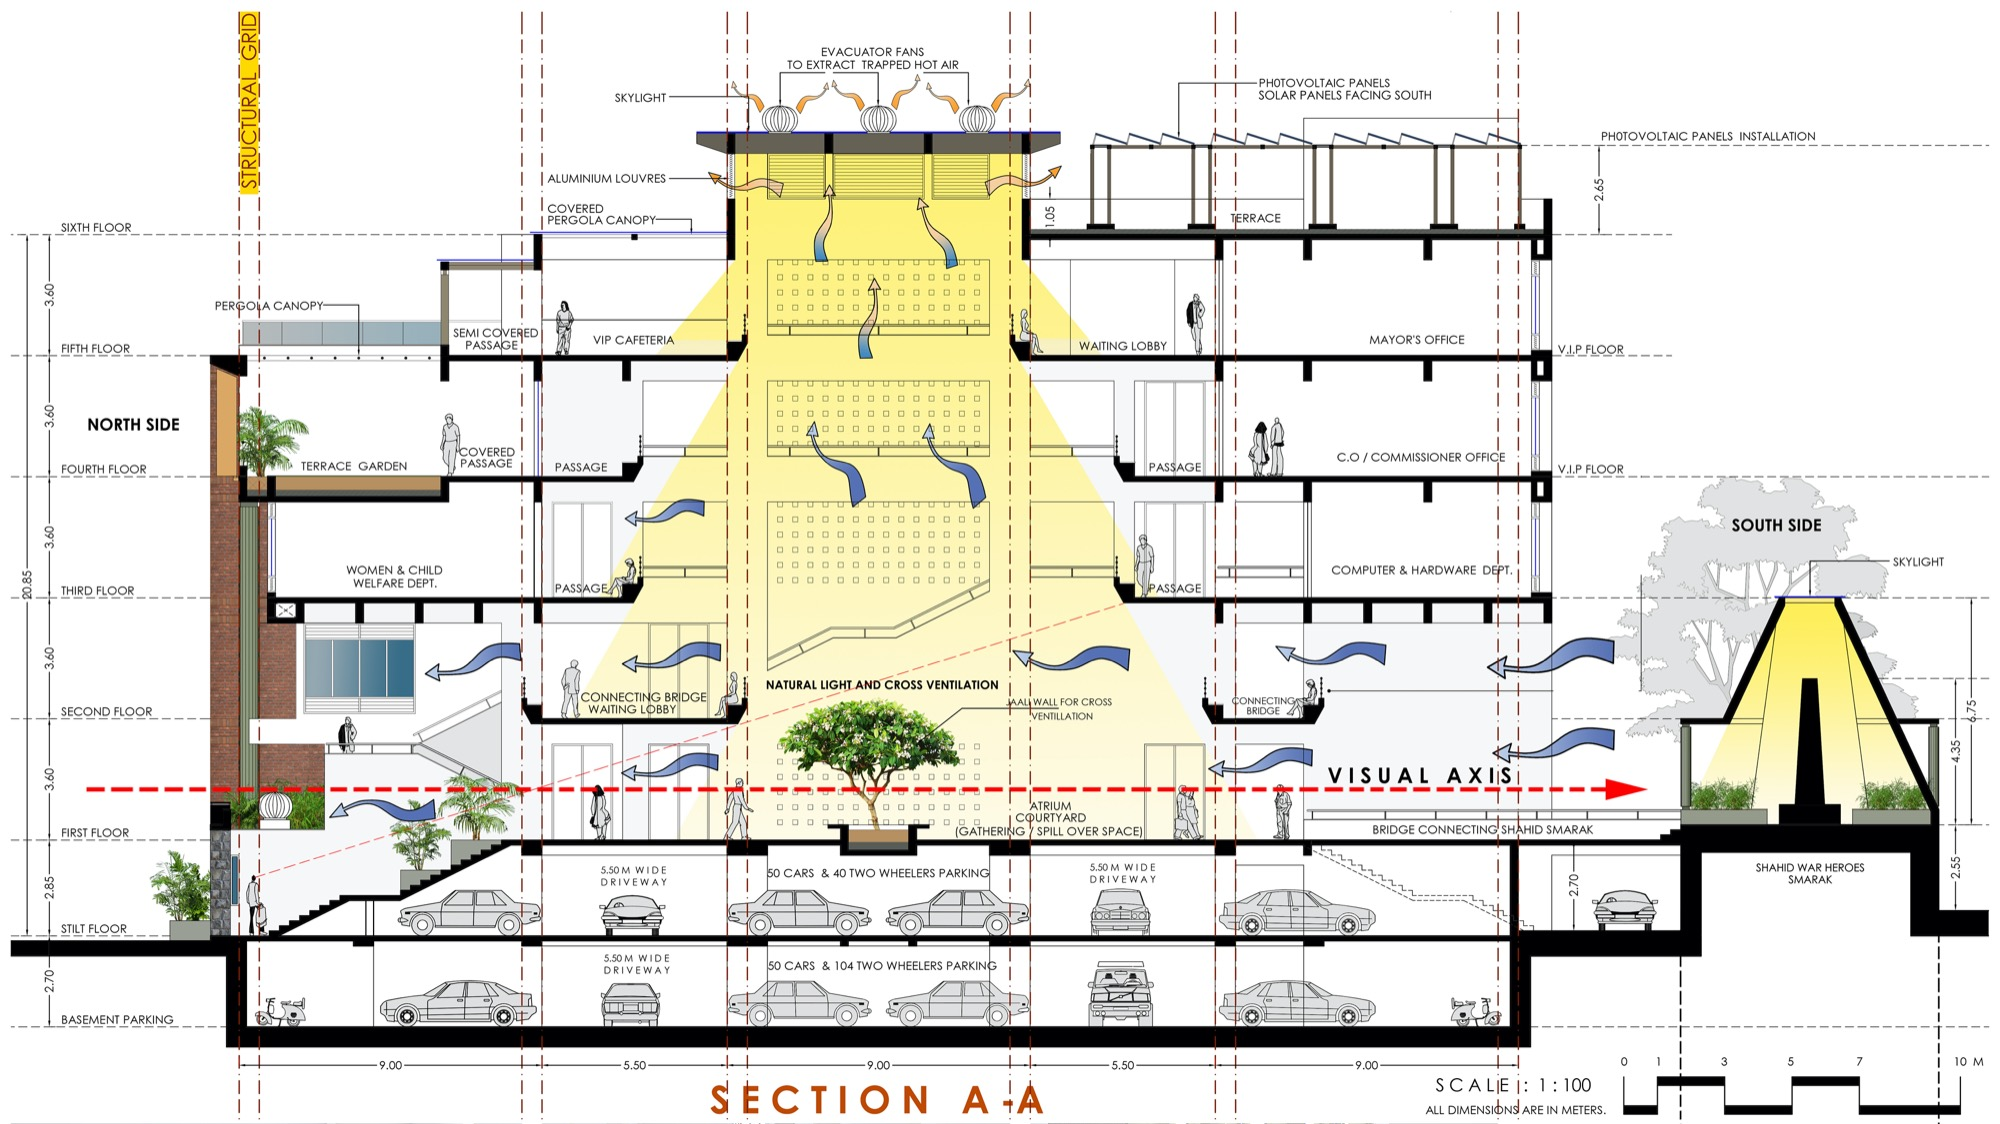 Satara Municipal Corporation, Competition Entry by KENARCH Architects, Pune 62